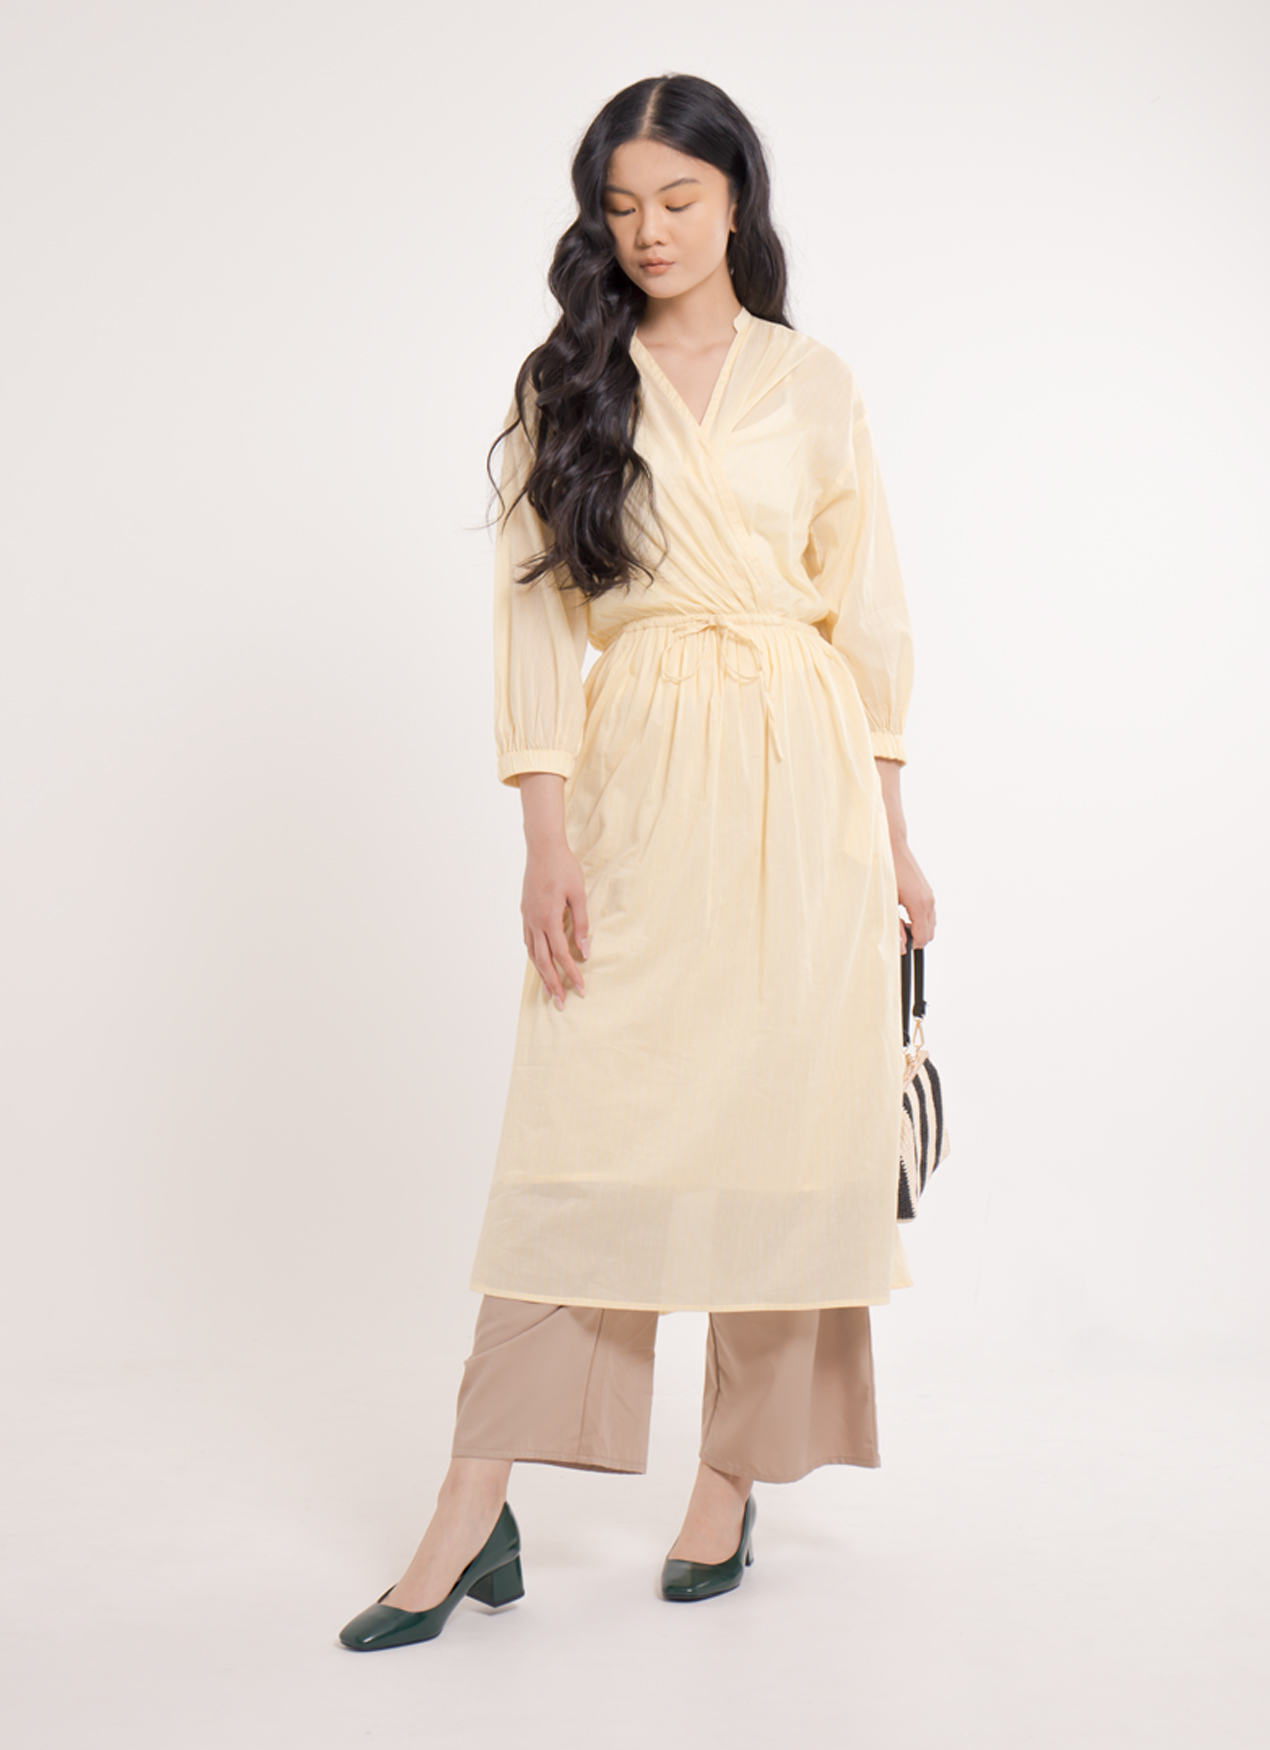 Sevendays Sunday Rei Dress - Yellow